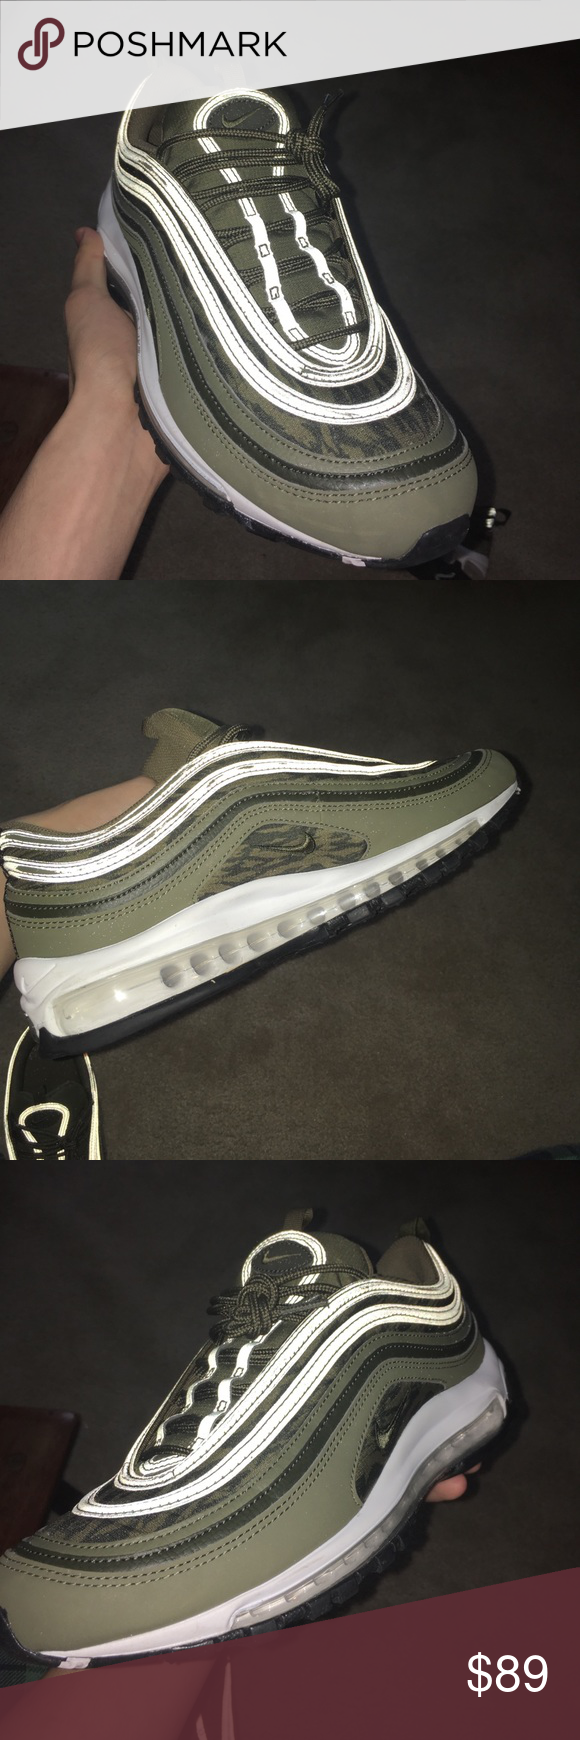 sneakers for cheap 922bb 60b10 AirMax 97 Tiger Camo Olive Worn twice minimal scuffs size 10 ...